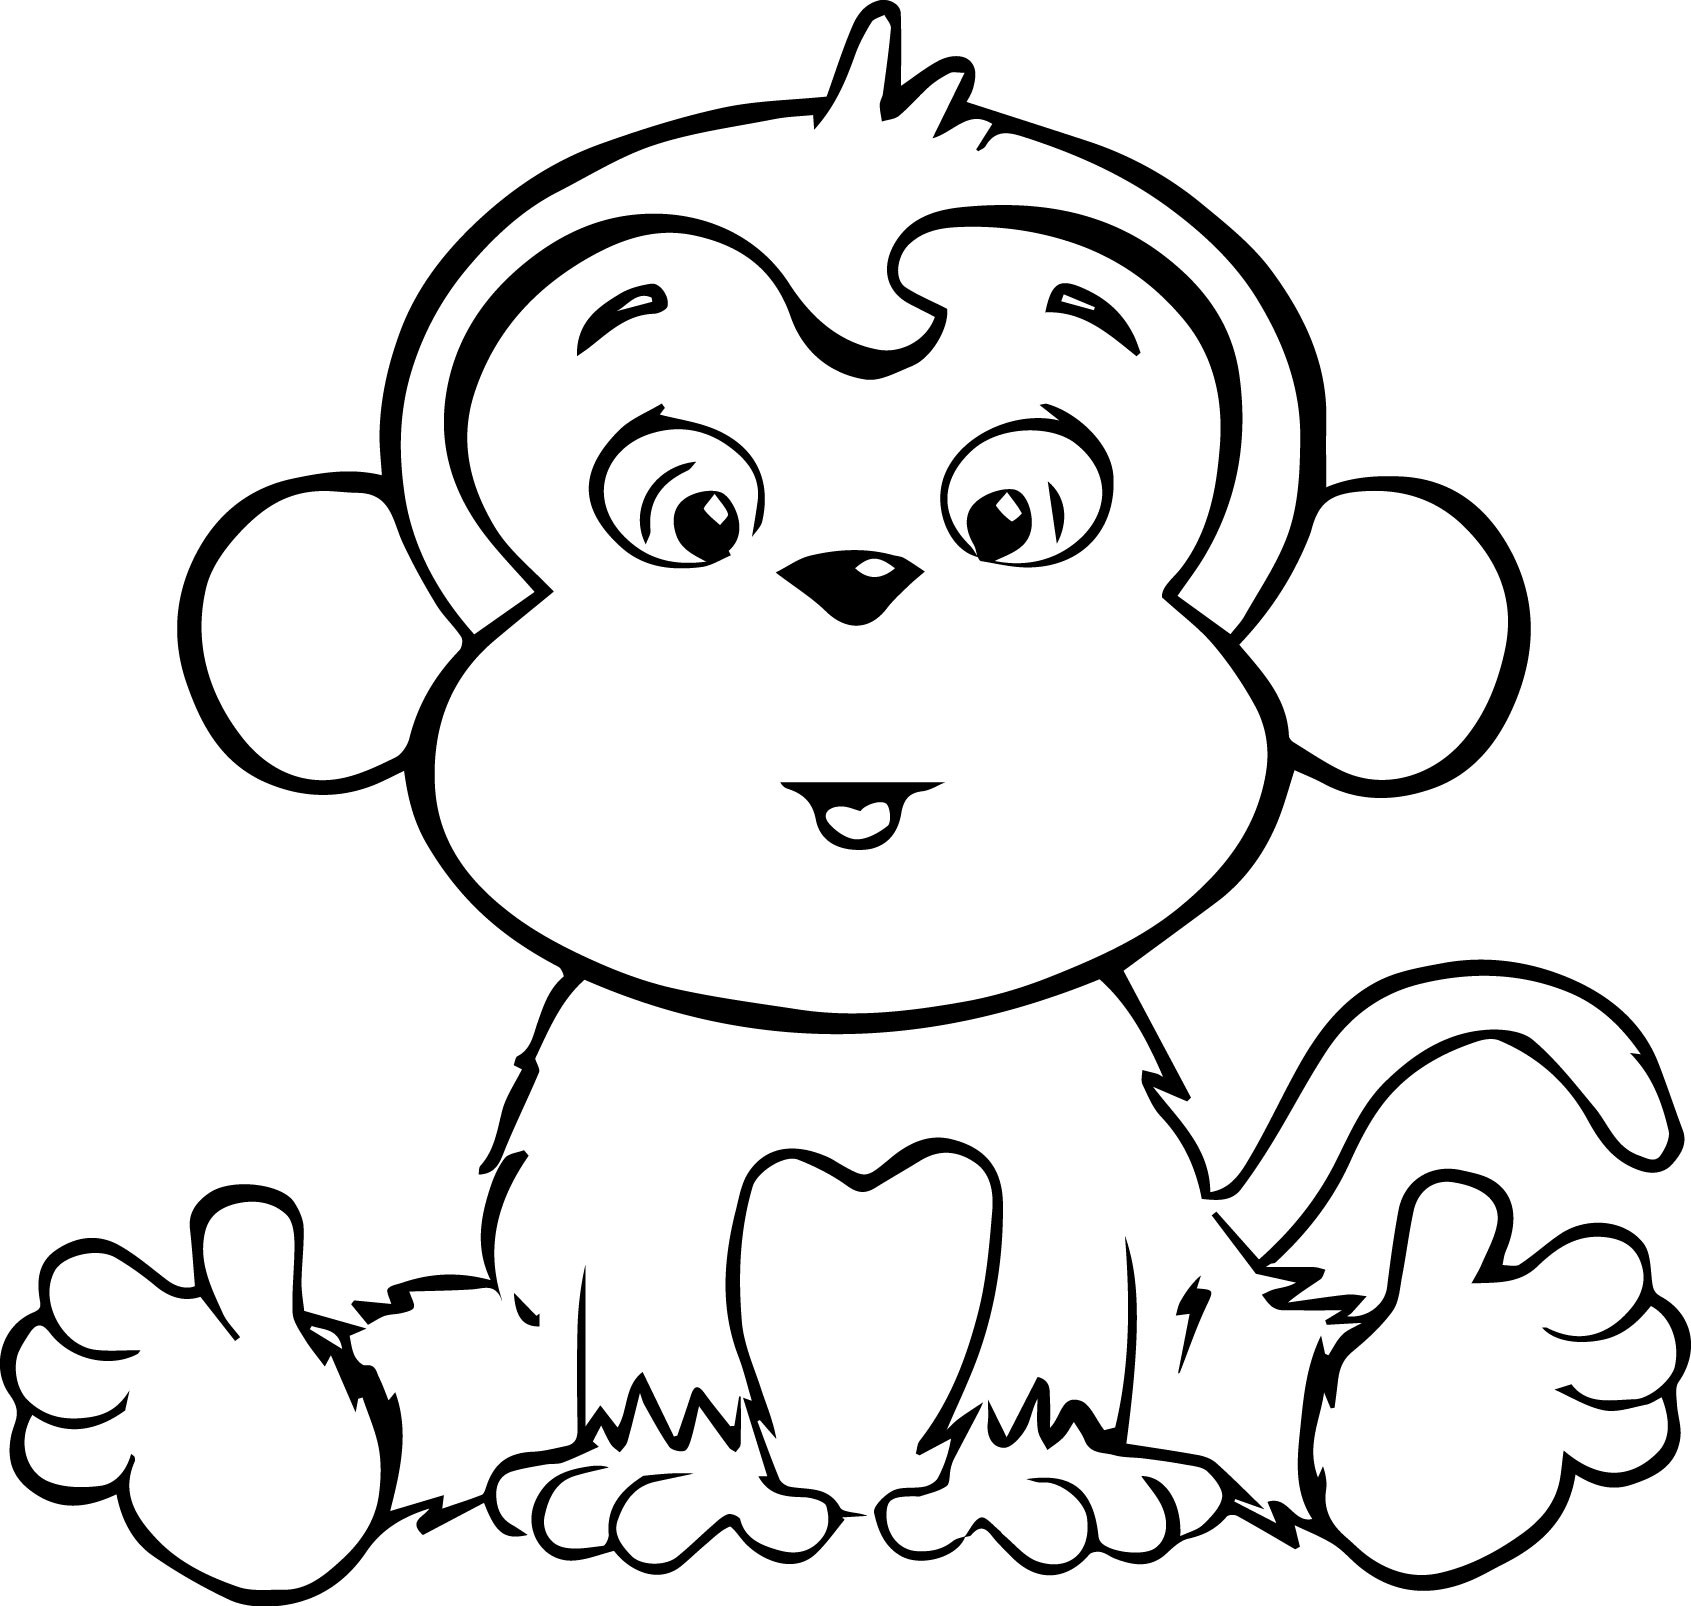 1691x1606 Baby Monkey Coloring Pages Wallpapers